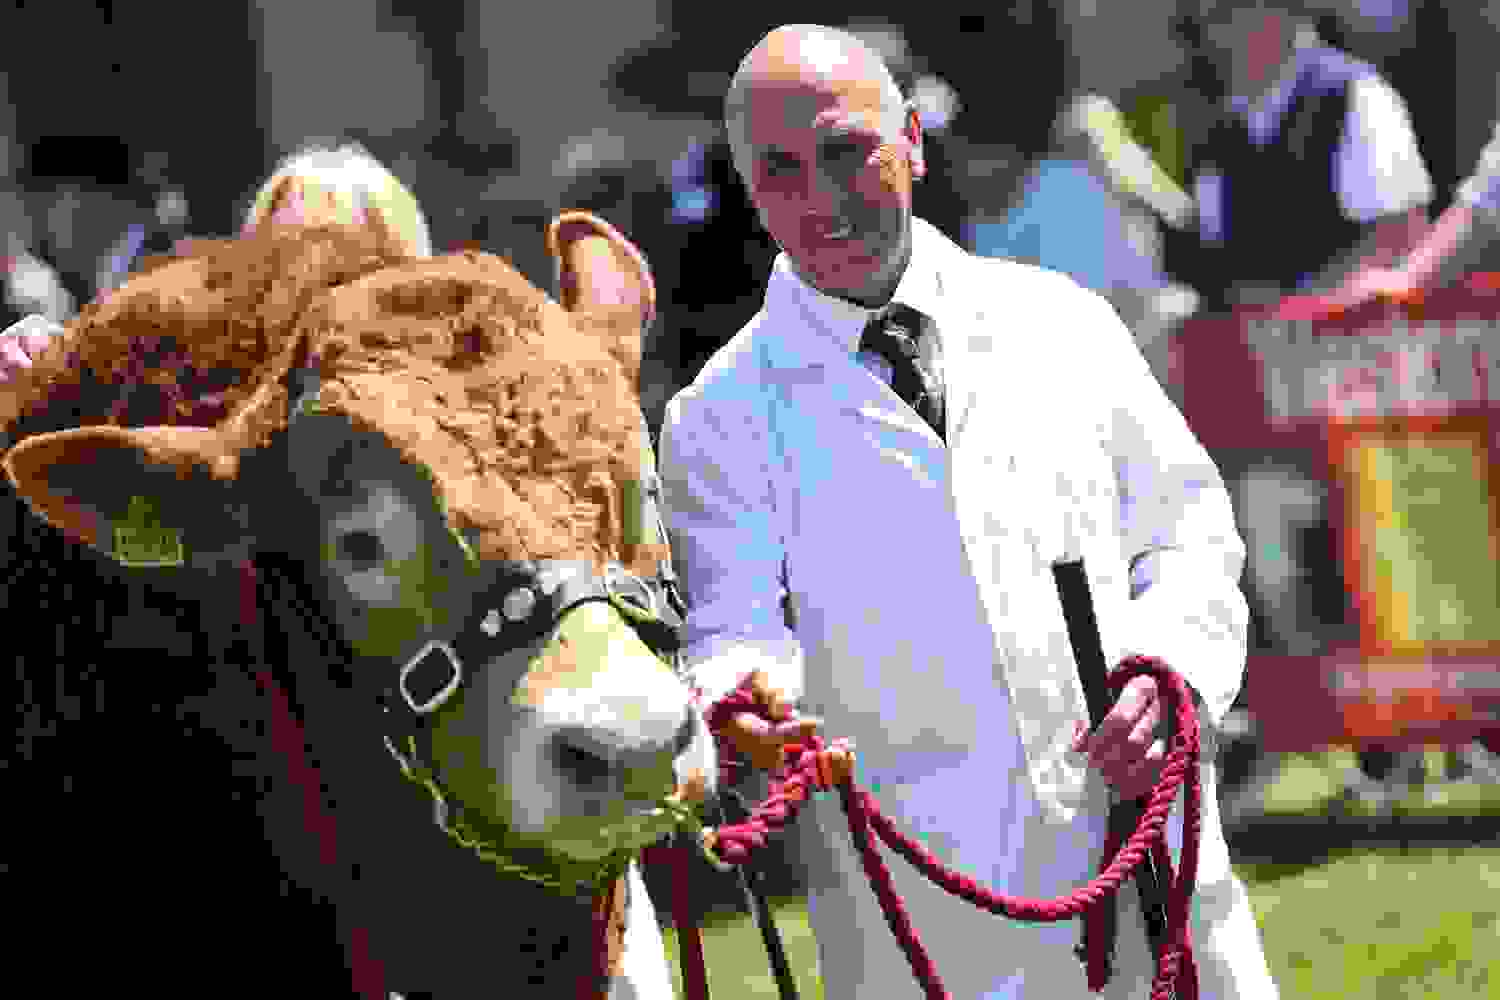 Farming Village - Cattle Judging - Royal Three Counties Show.jpg